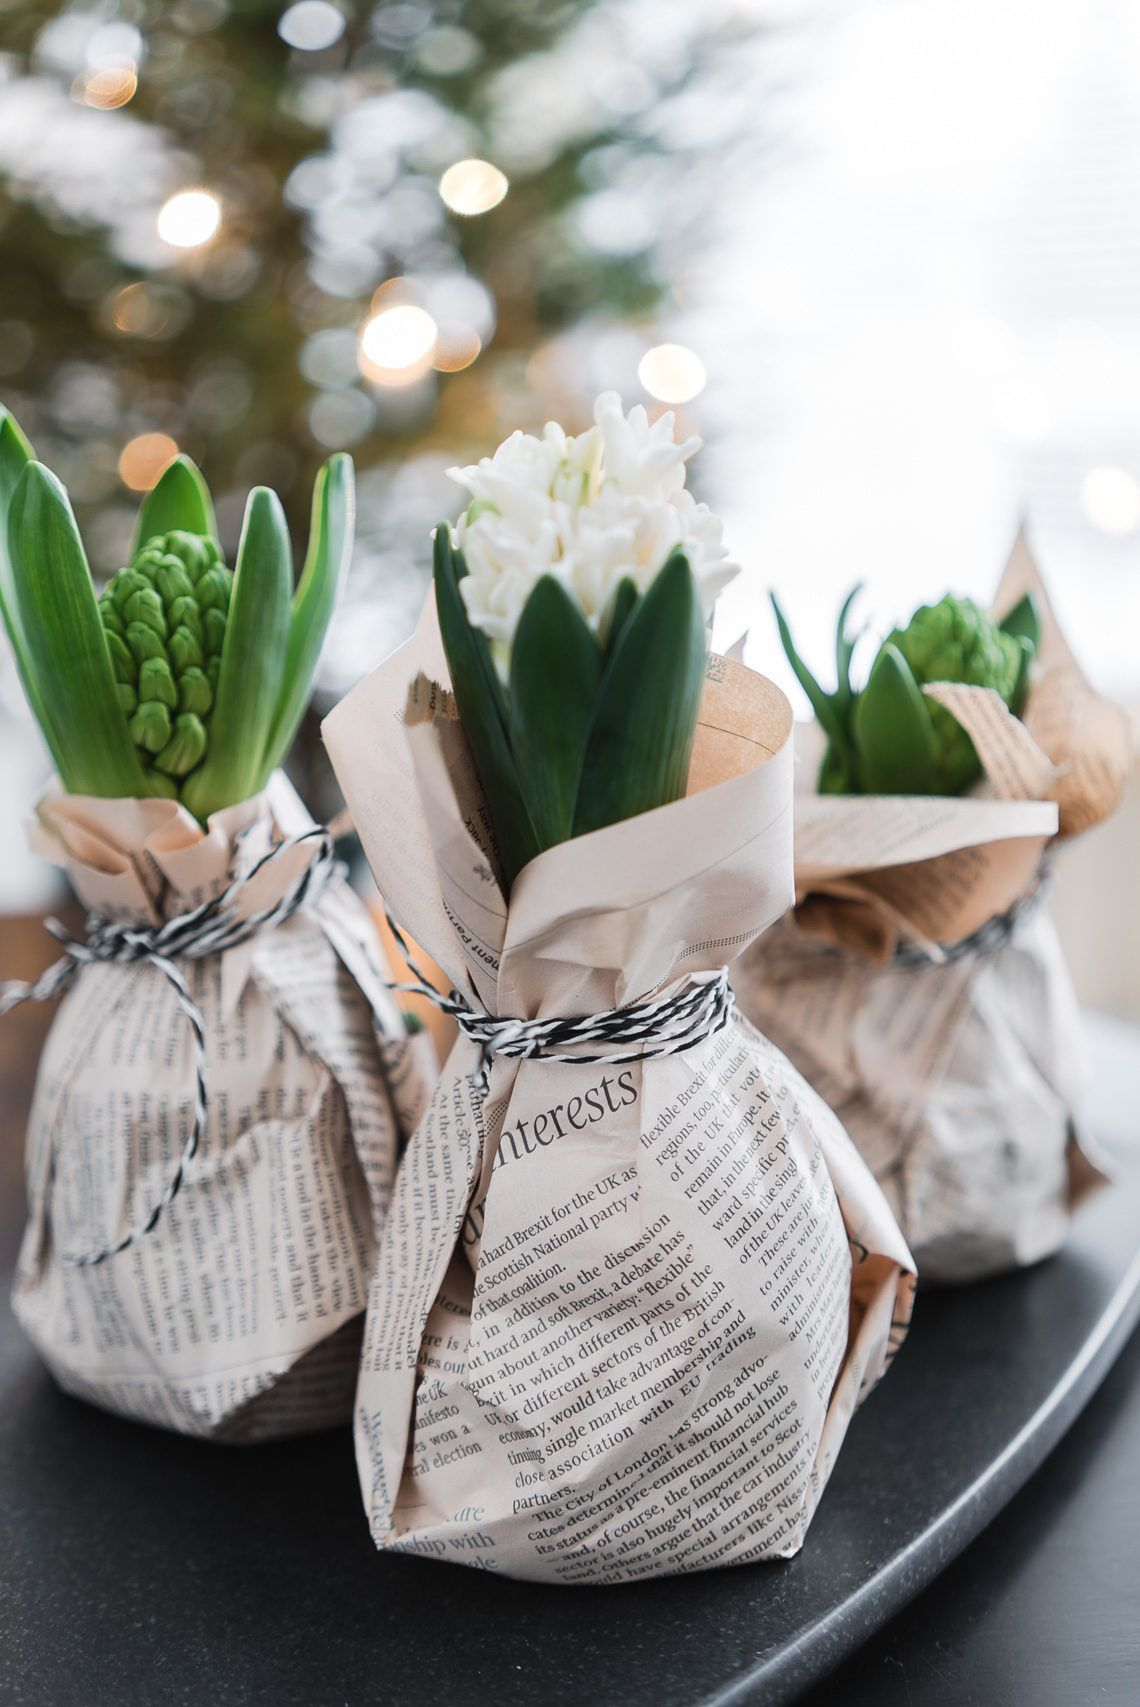 Christmas Ideas of hyacinth-planting